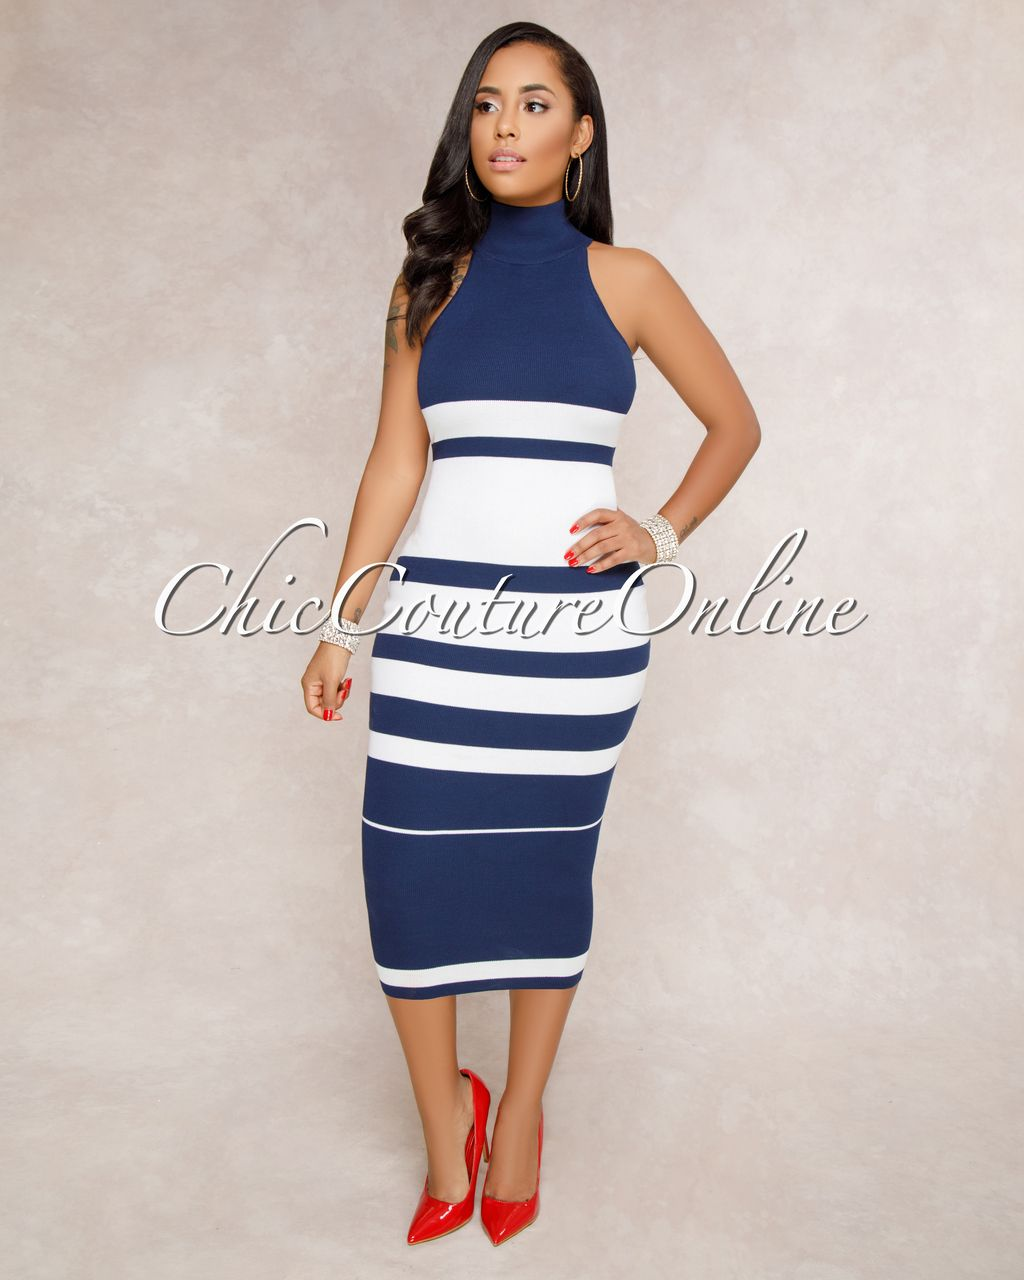 8e7d180137 Image 1 Striped Midi Dress, Peplum Dress, Bodycon Dress, Chic Couture  Online,